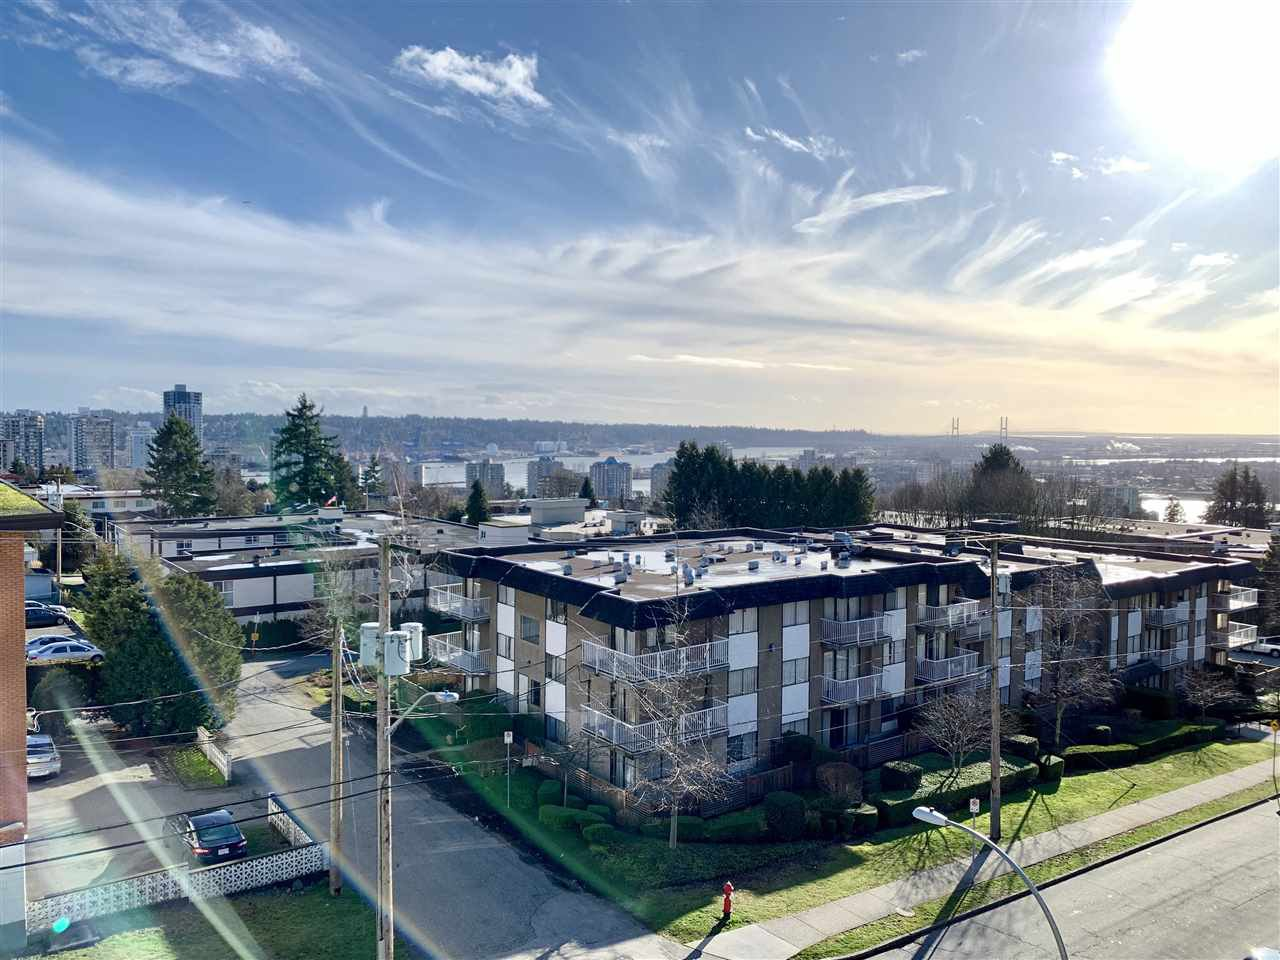 Main Photo: 412 809 FOURTH AVENUE in New Westminster: Uptown NW Condo for sale : MLS®# R2431971